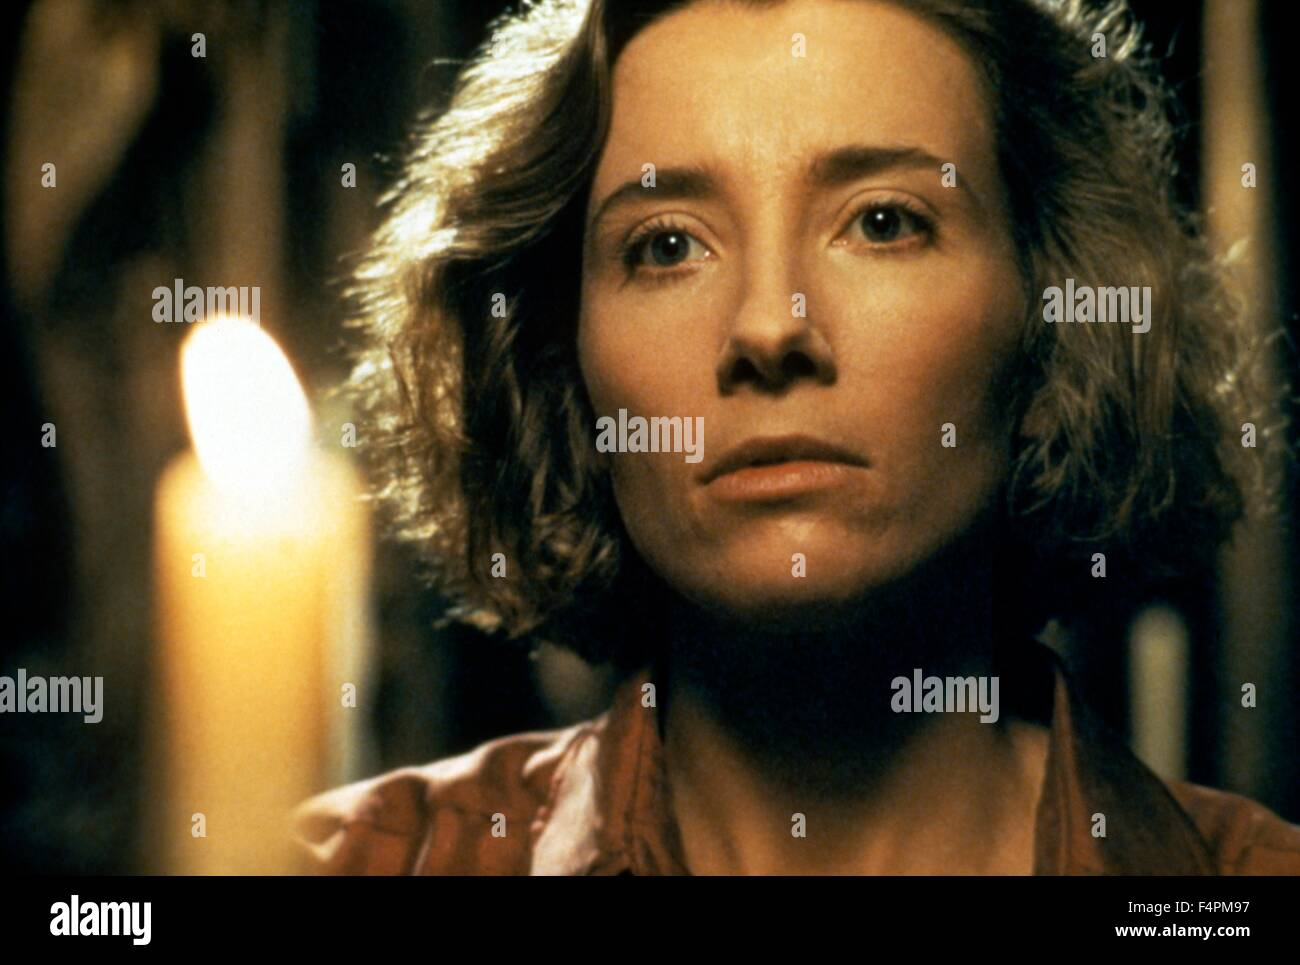 Emma Thompson / Dead Again / 1991 directed by Kenneth Branagh [Paramount Pictures] - Stock Image